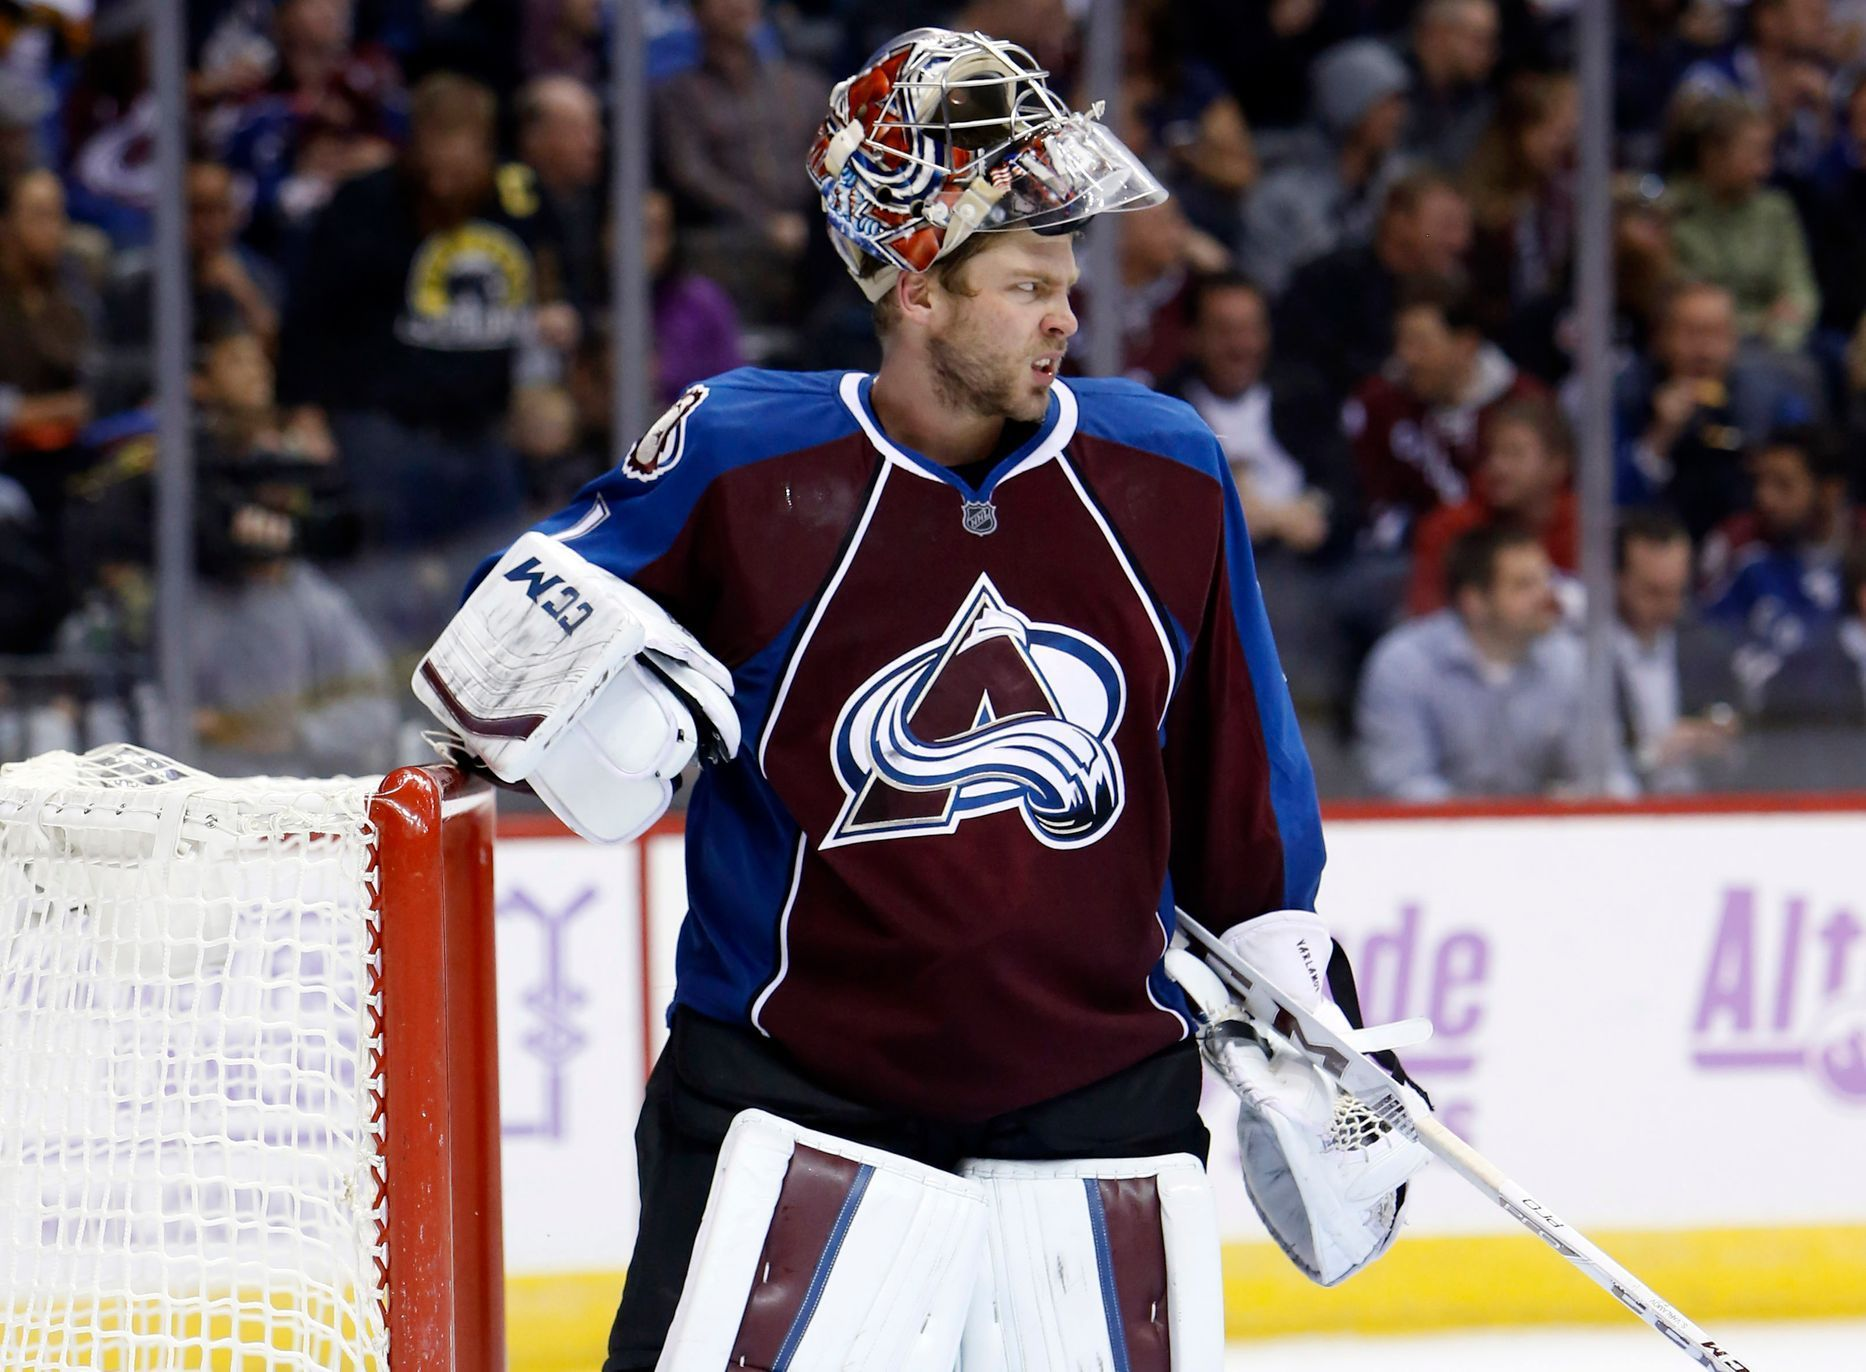 NHL: Vancouver Canucks vs. Colorado Avalanche (Varlamov)